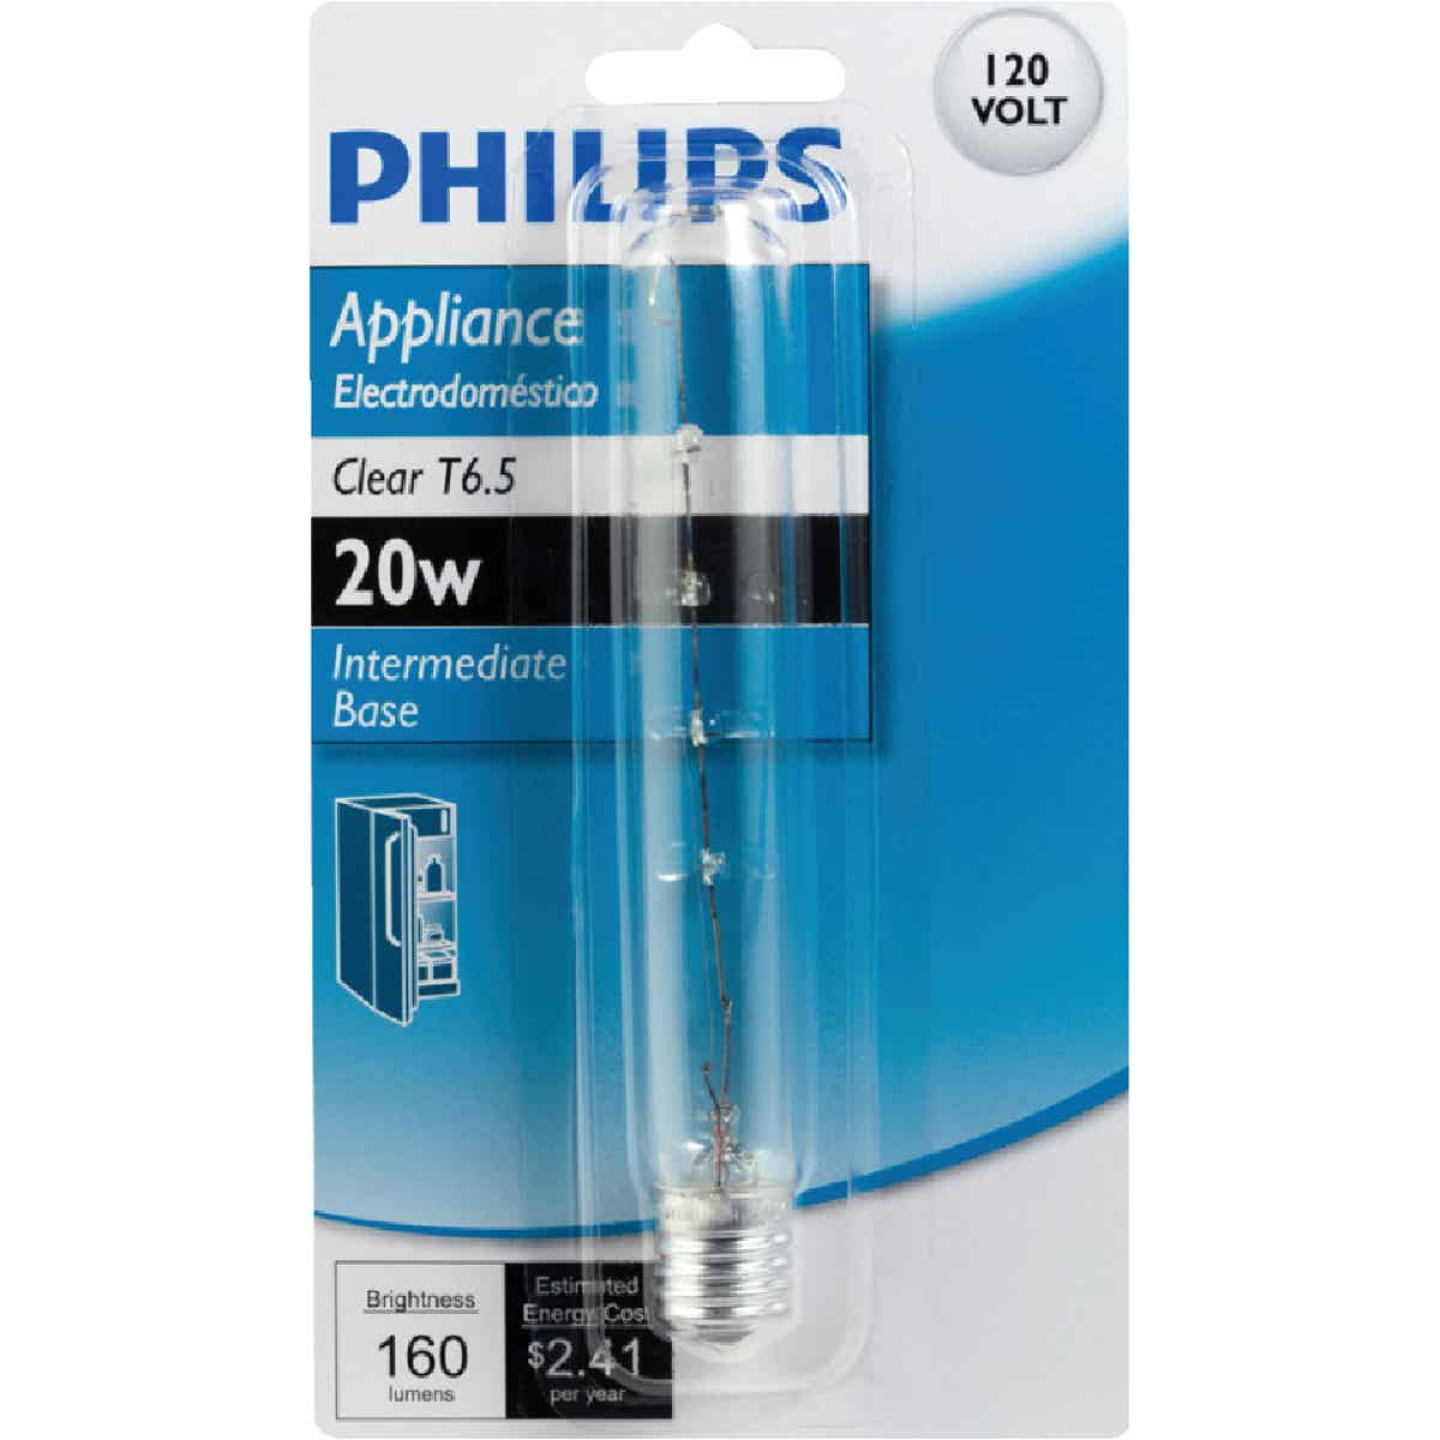 Philips 20W Clear Intermediate T6.5 Incandescent Appliance Light Bulb Image 2